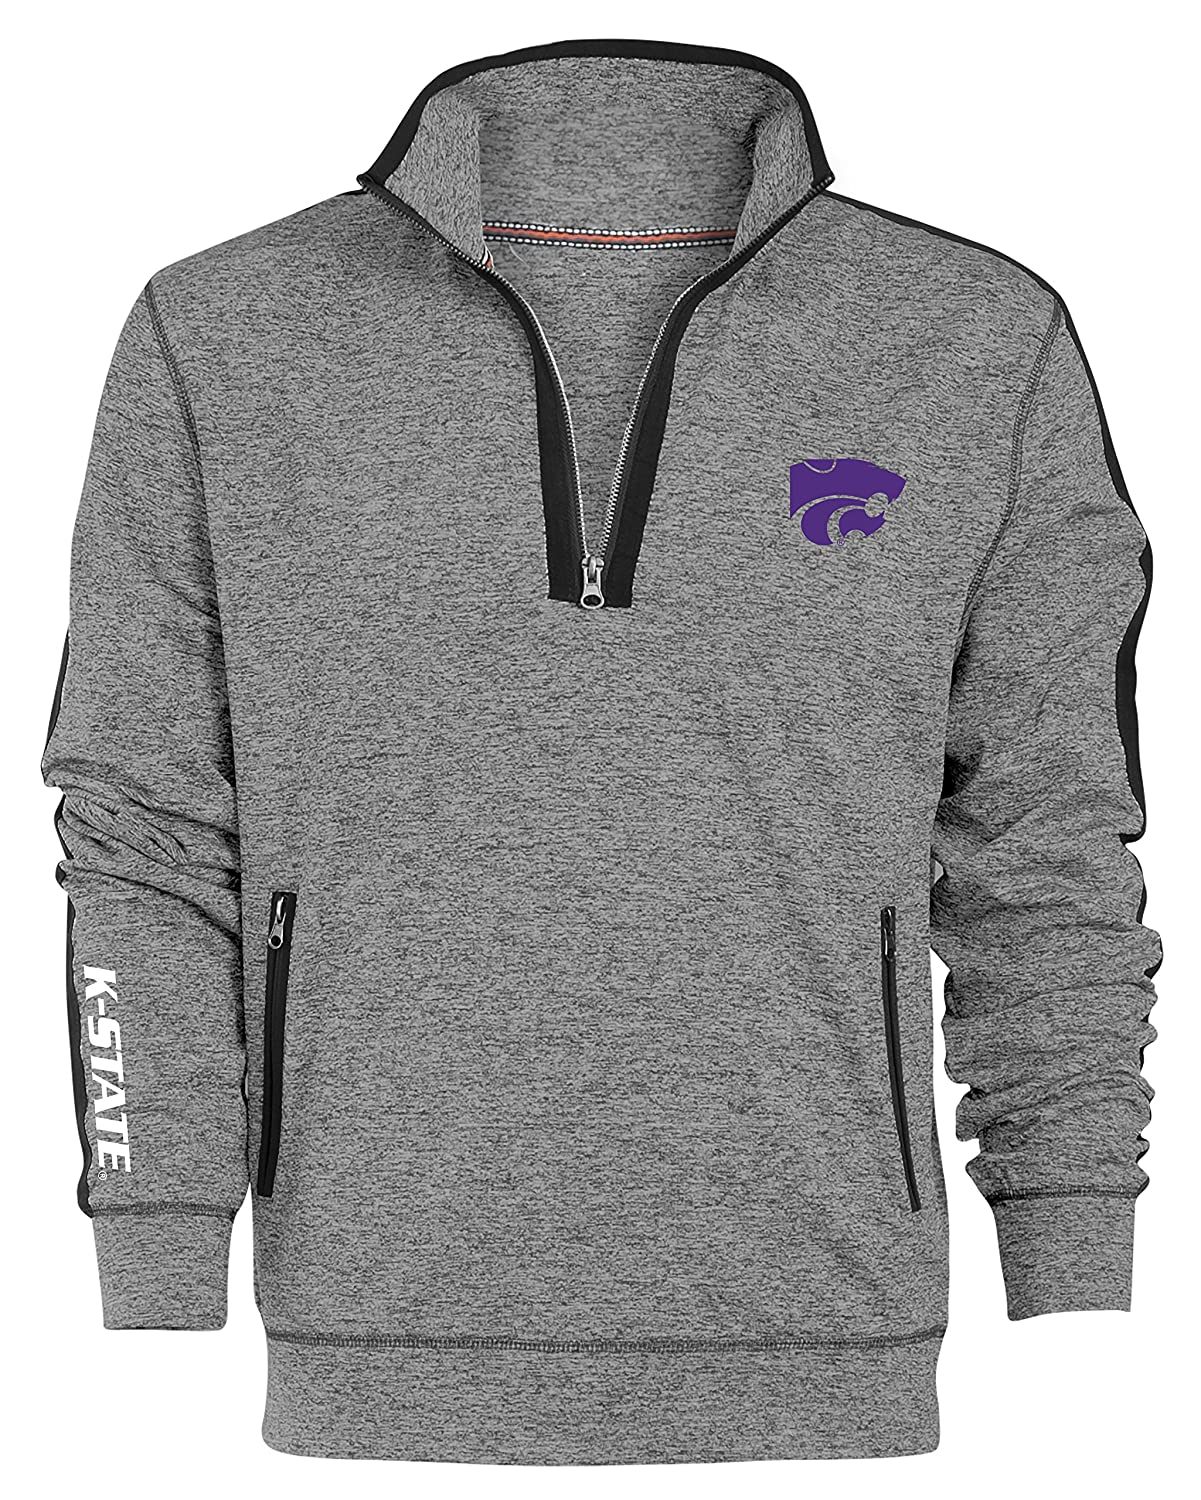 Camp David NCAA Roadster Herren Premium quarter-zip Pullover, herren, Roadster, Gunpowder, Medium